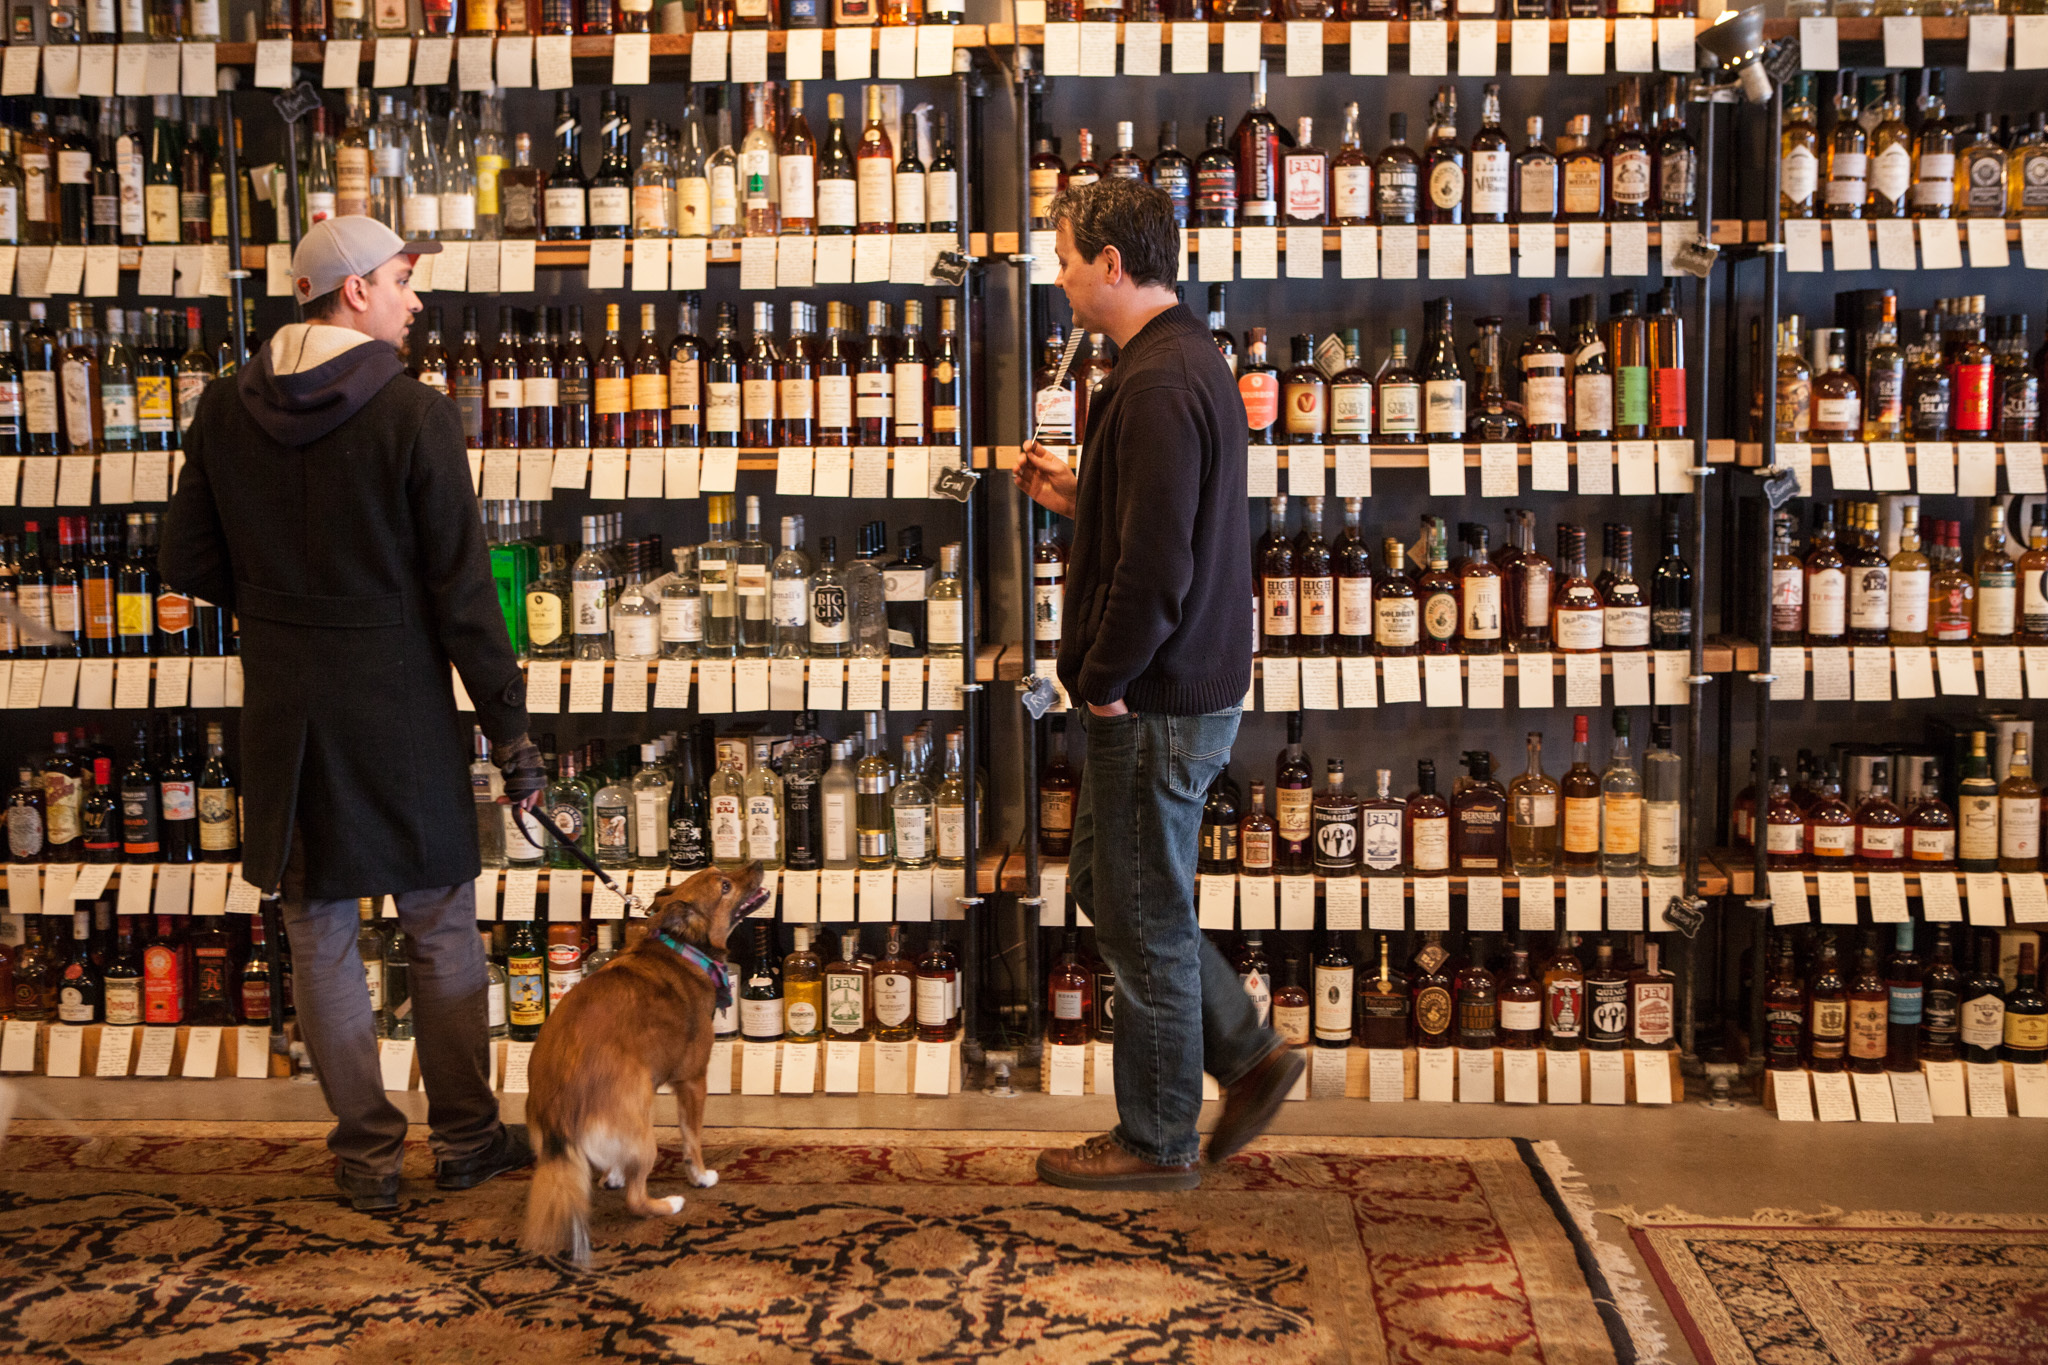 The best liquor stores in Chicago